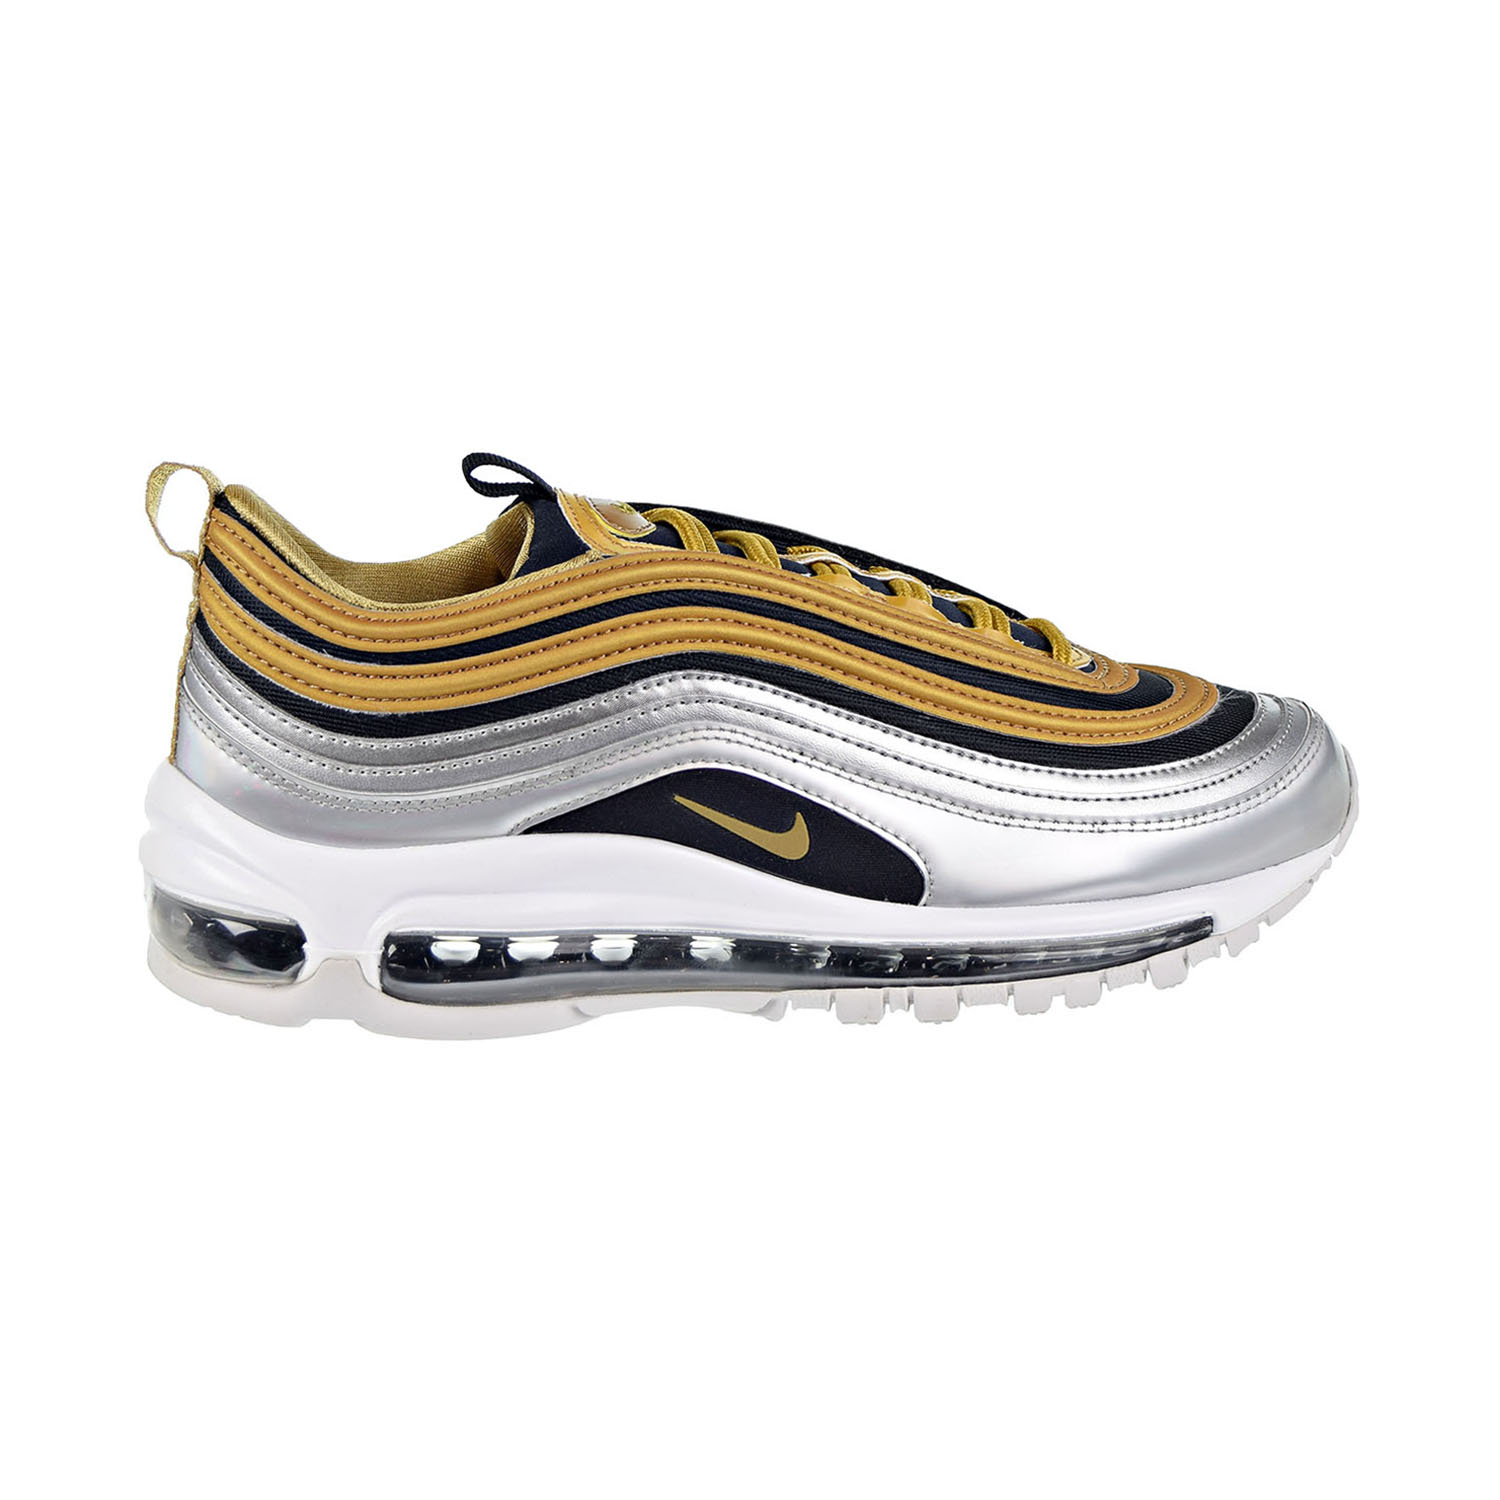 4adc45746f3e Details about Nike Air Max 97 SE Women s Shoes Metallic Gold AQ4137-700